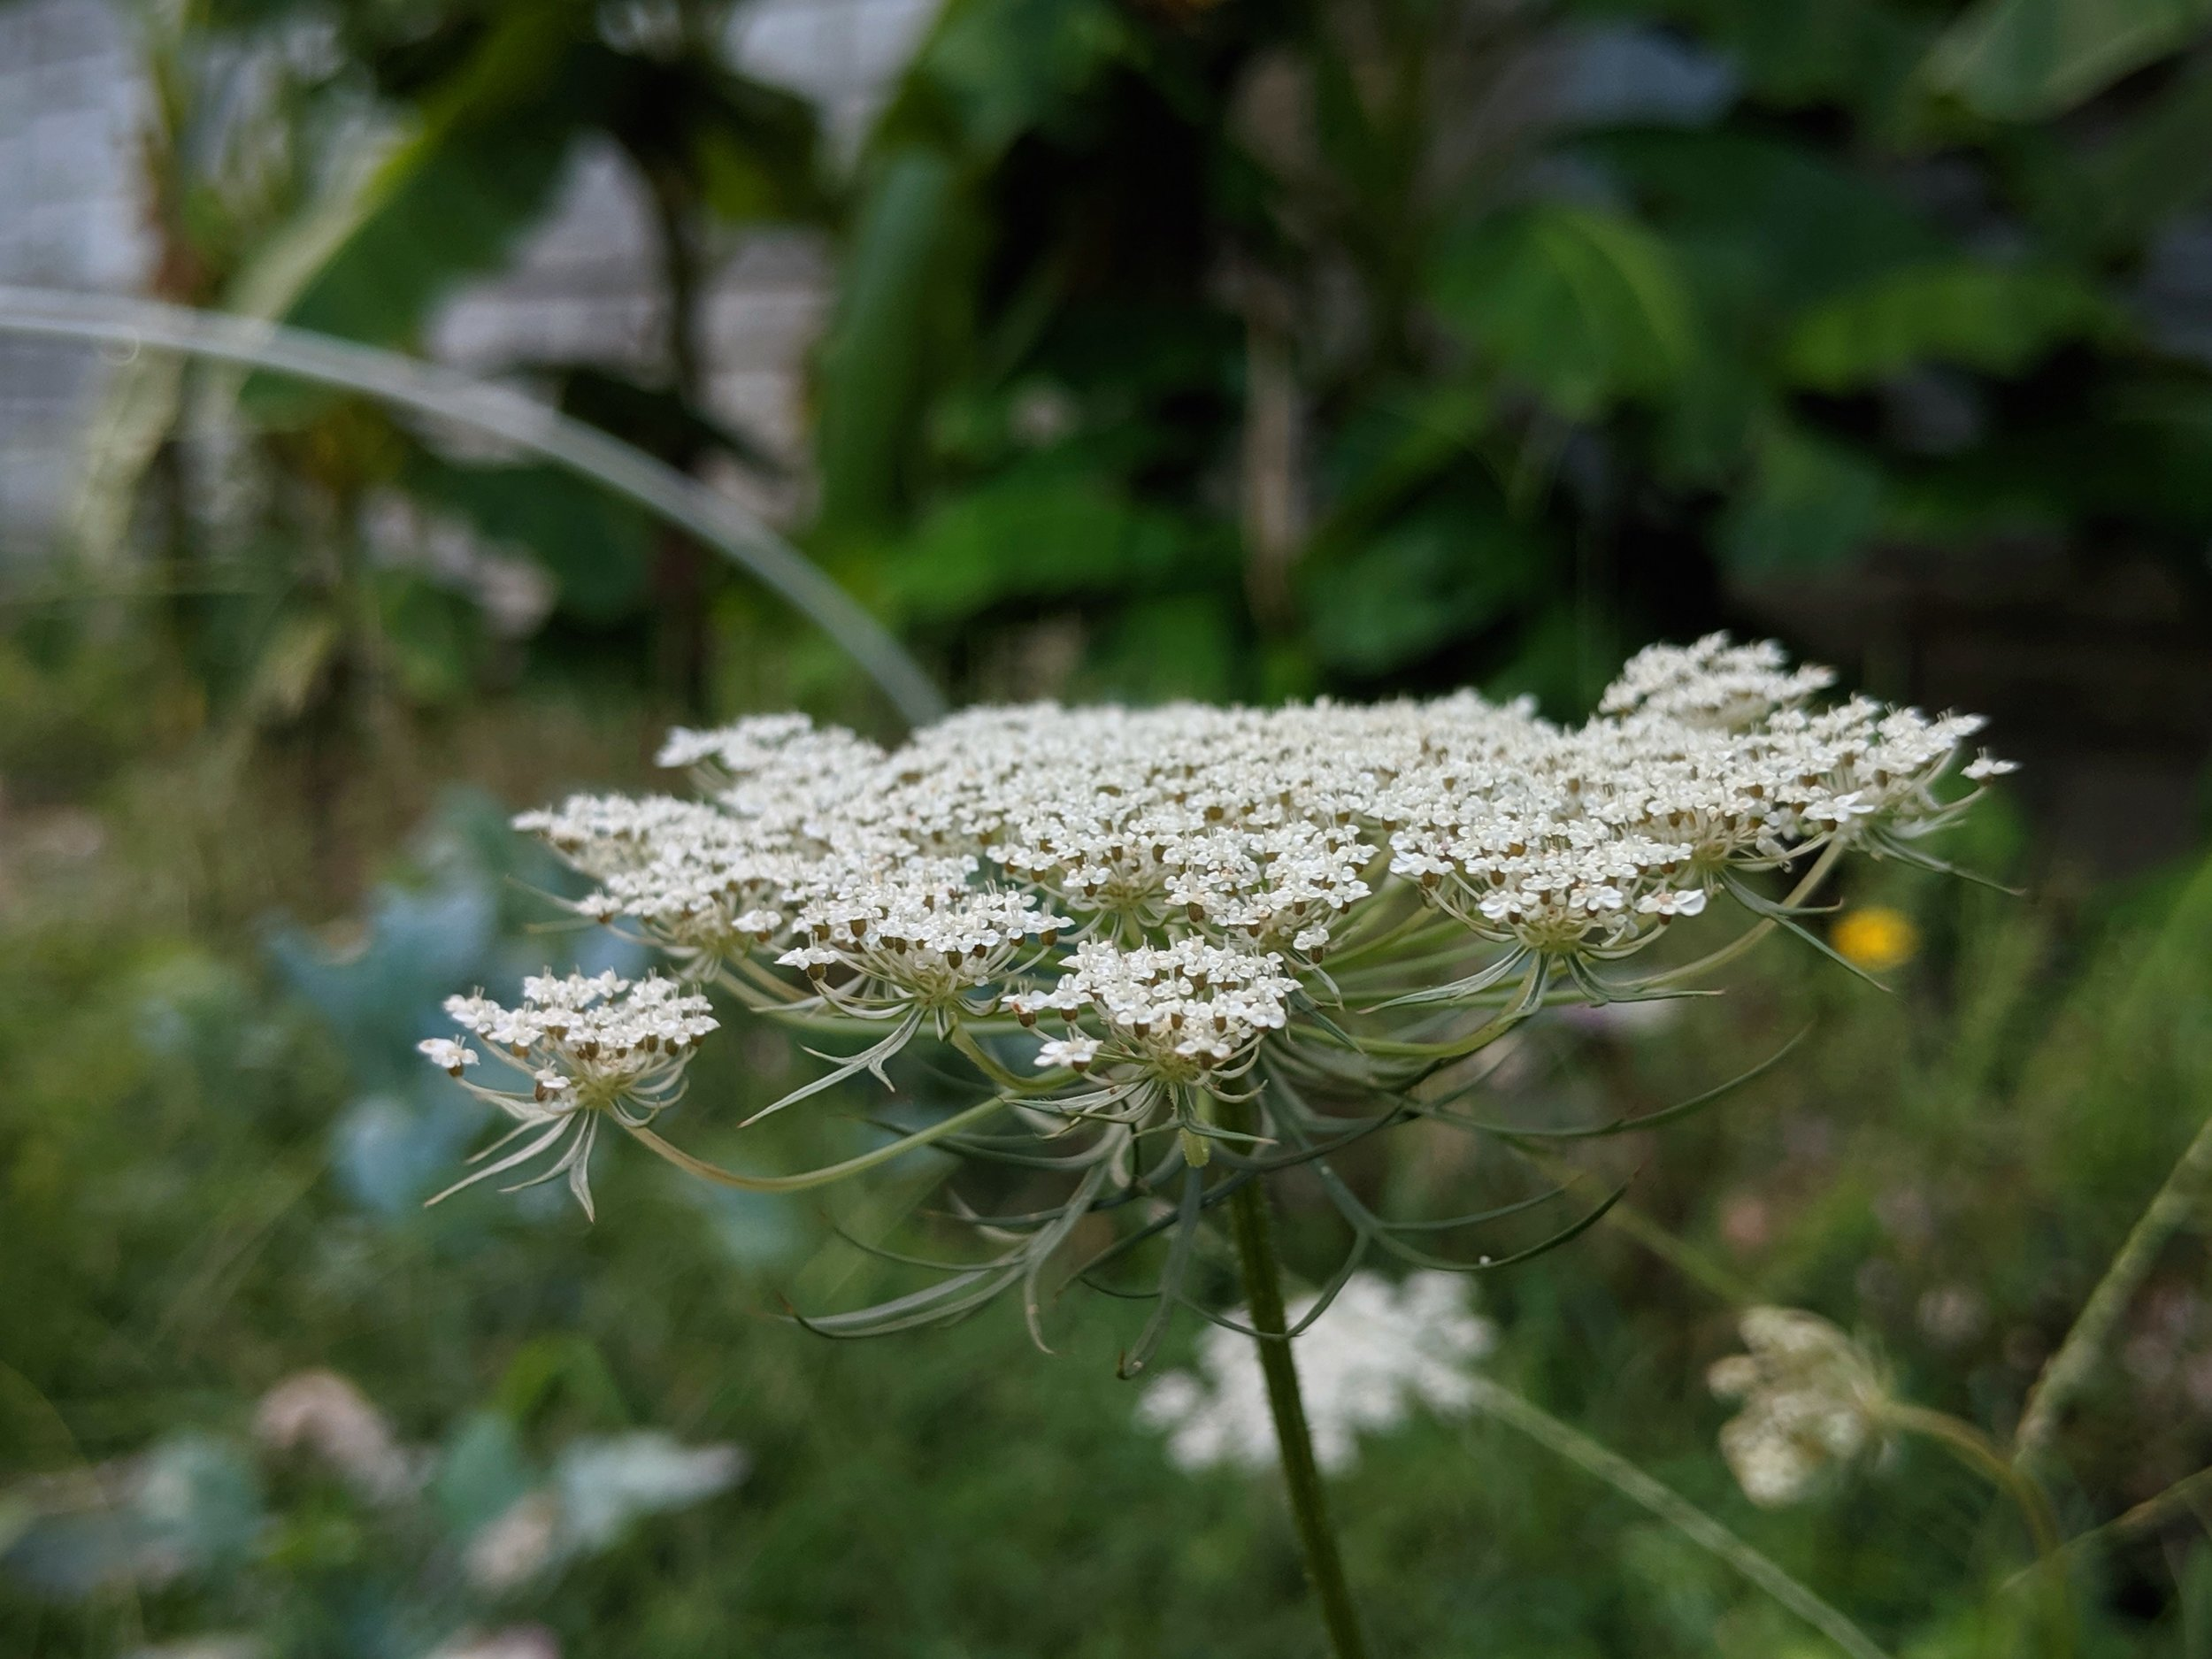 Herbs for Lammas time really include anything that is growing around you at the moment such as Queen Anne's Lace, Mugwort, Yarrow, Clover, Milkweed, Comfrey, Goldenrod, and so many more!